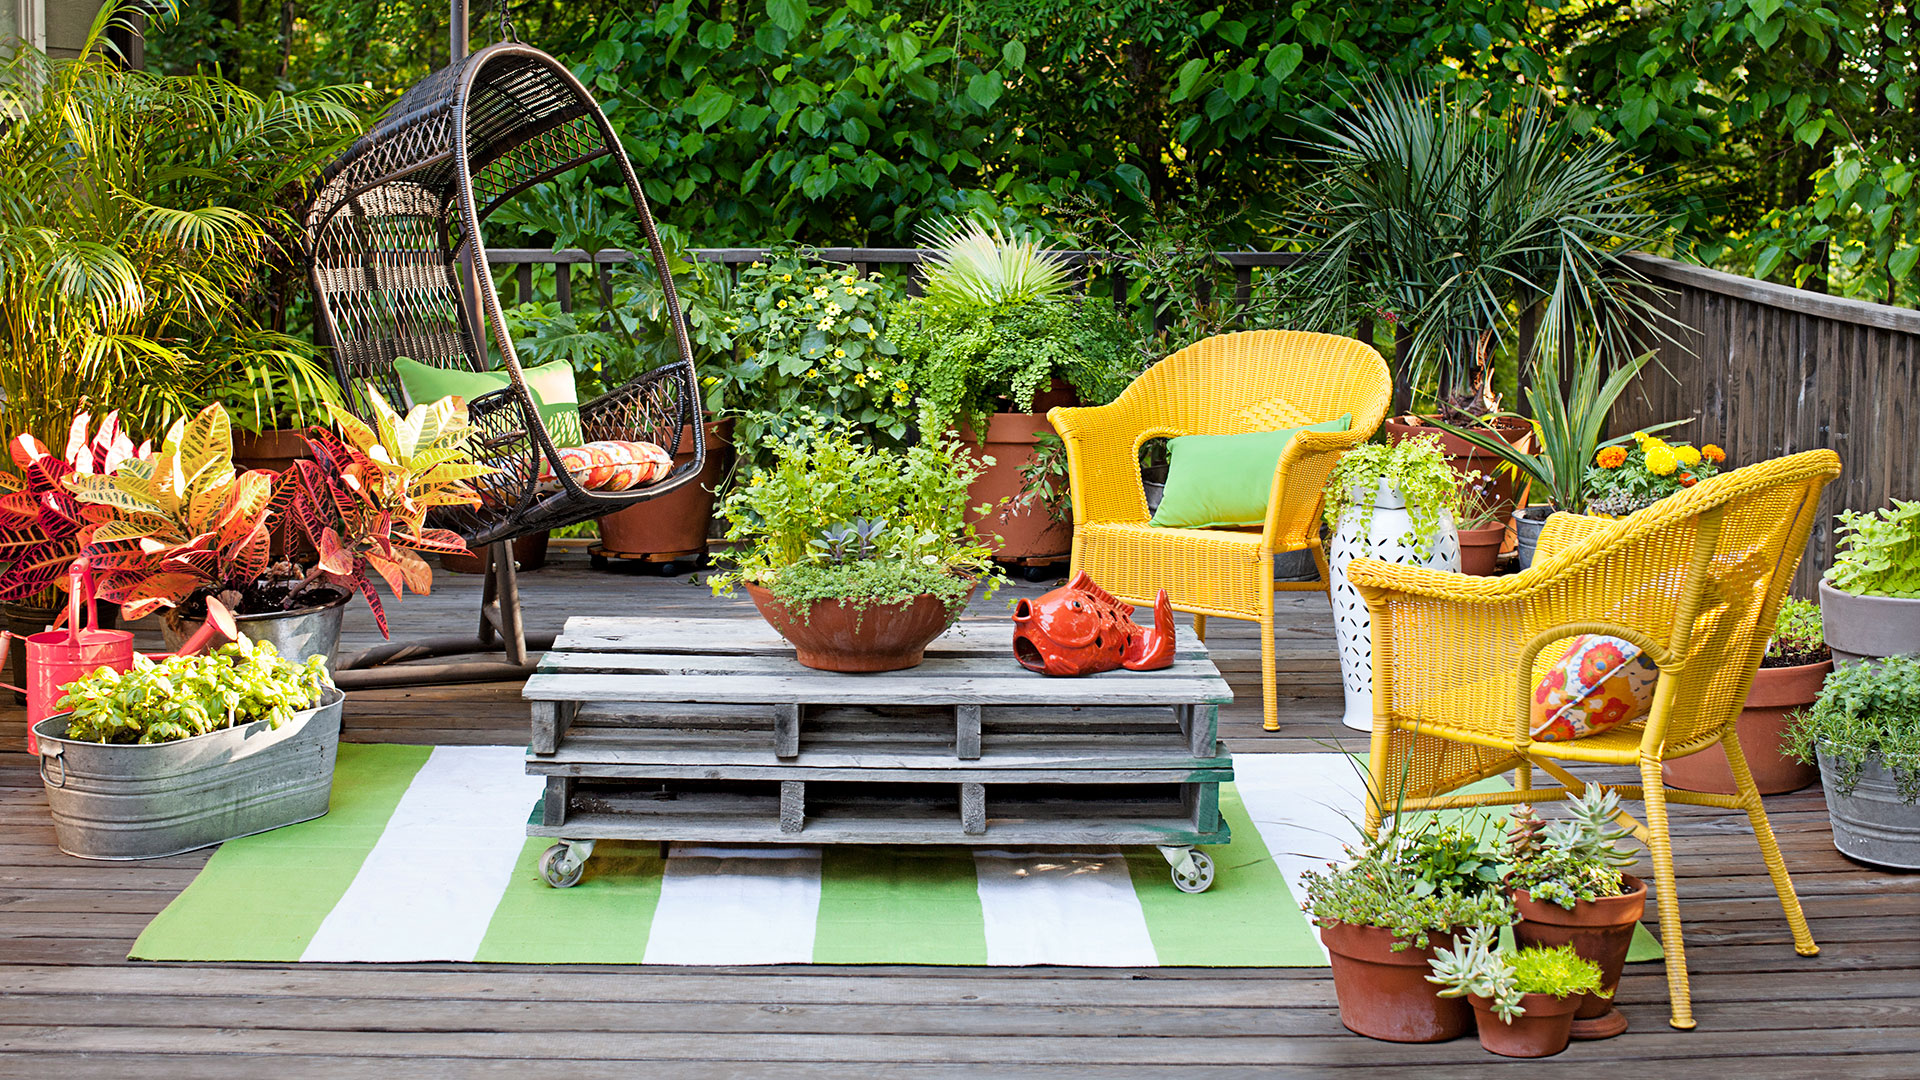 25 Backyard Decorating Ideas  Easy Gardening Tips and DIY Projects